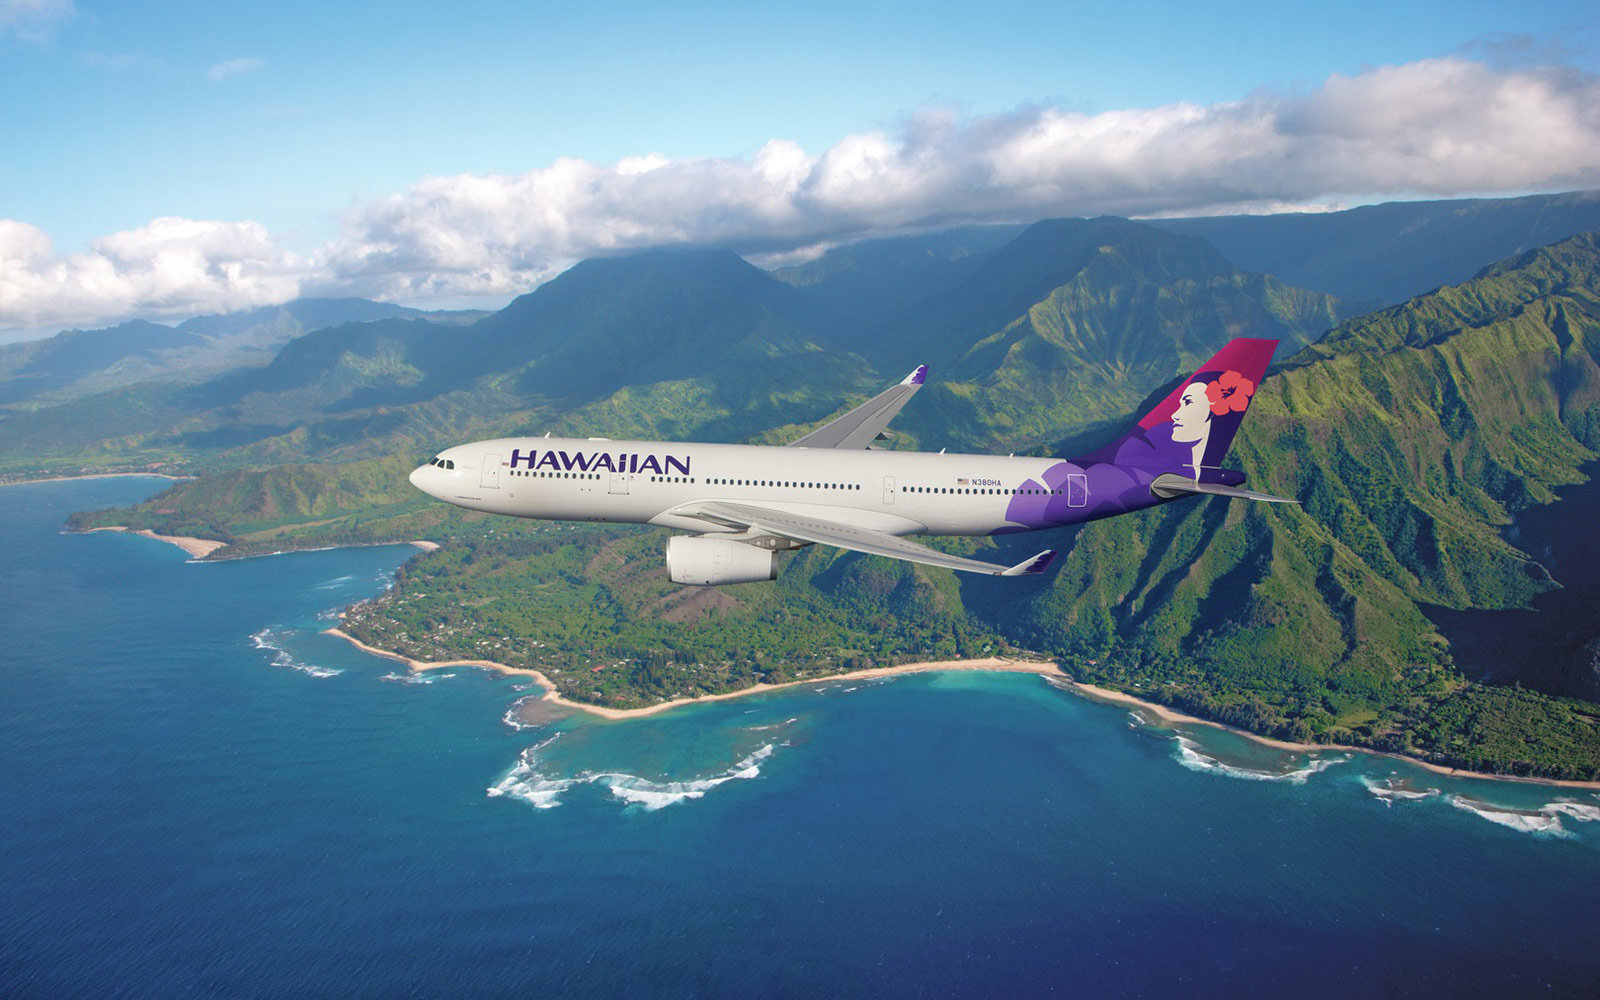 4. Hawaiian Airlines